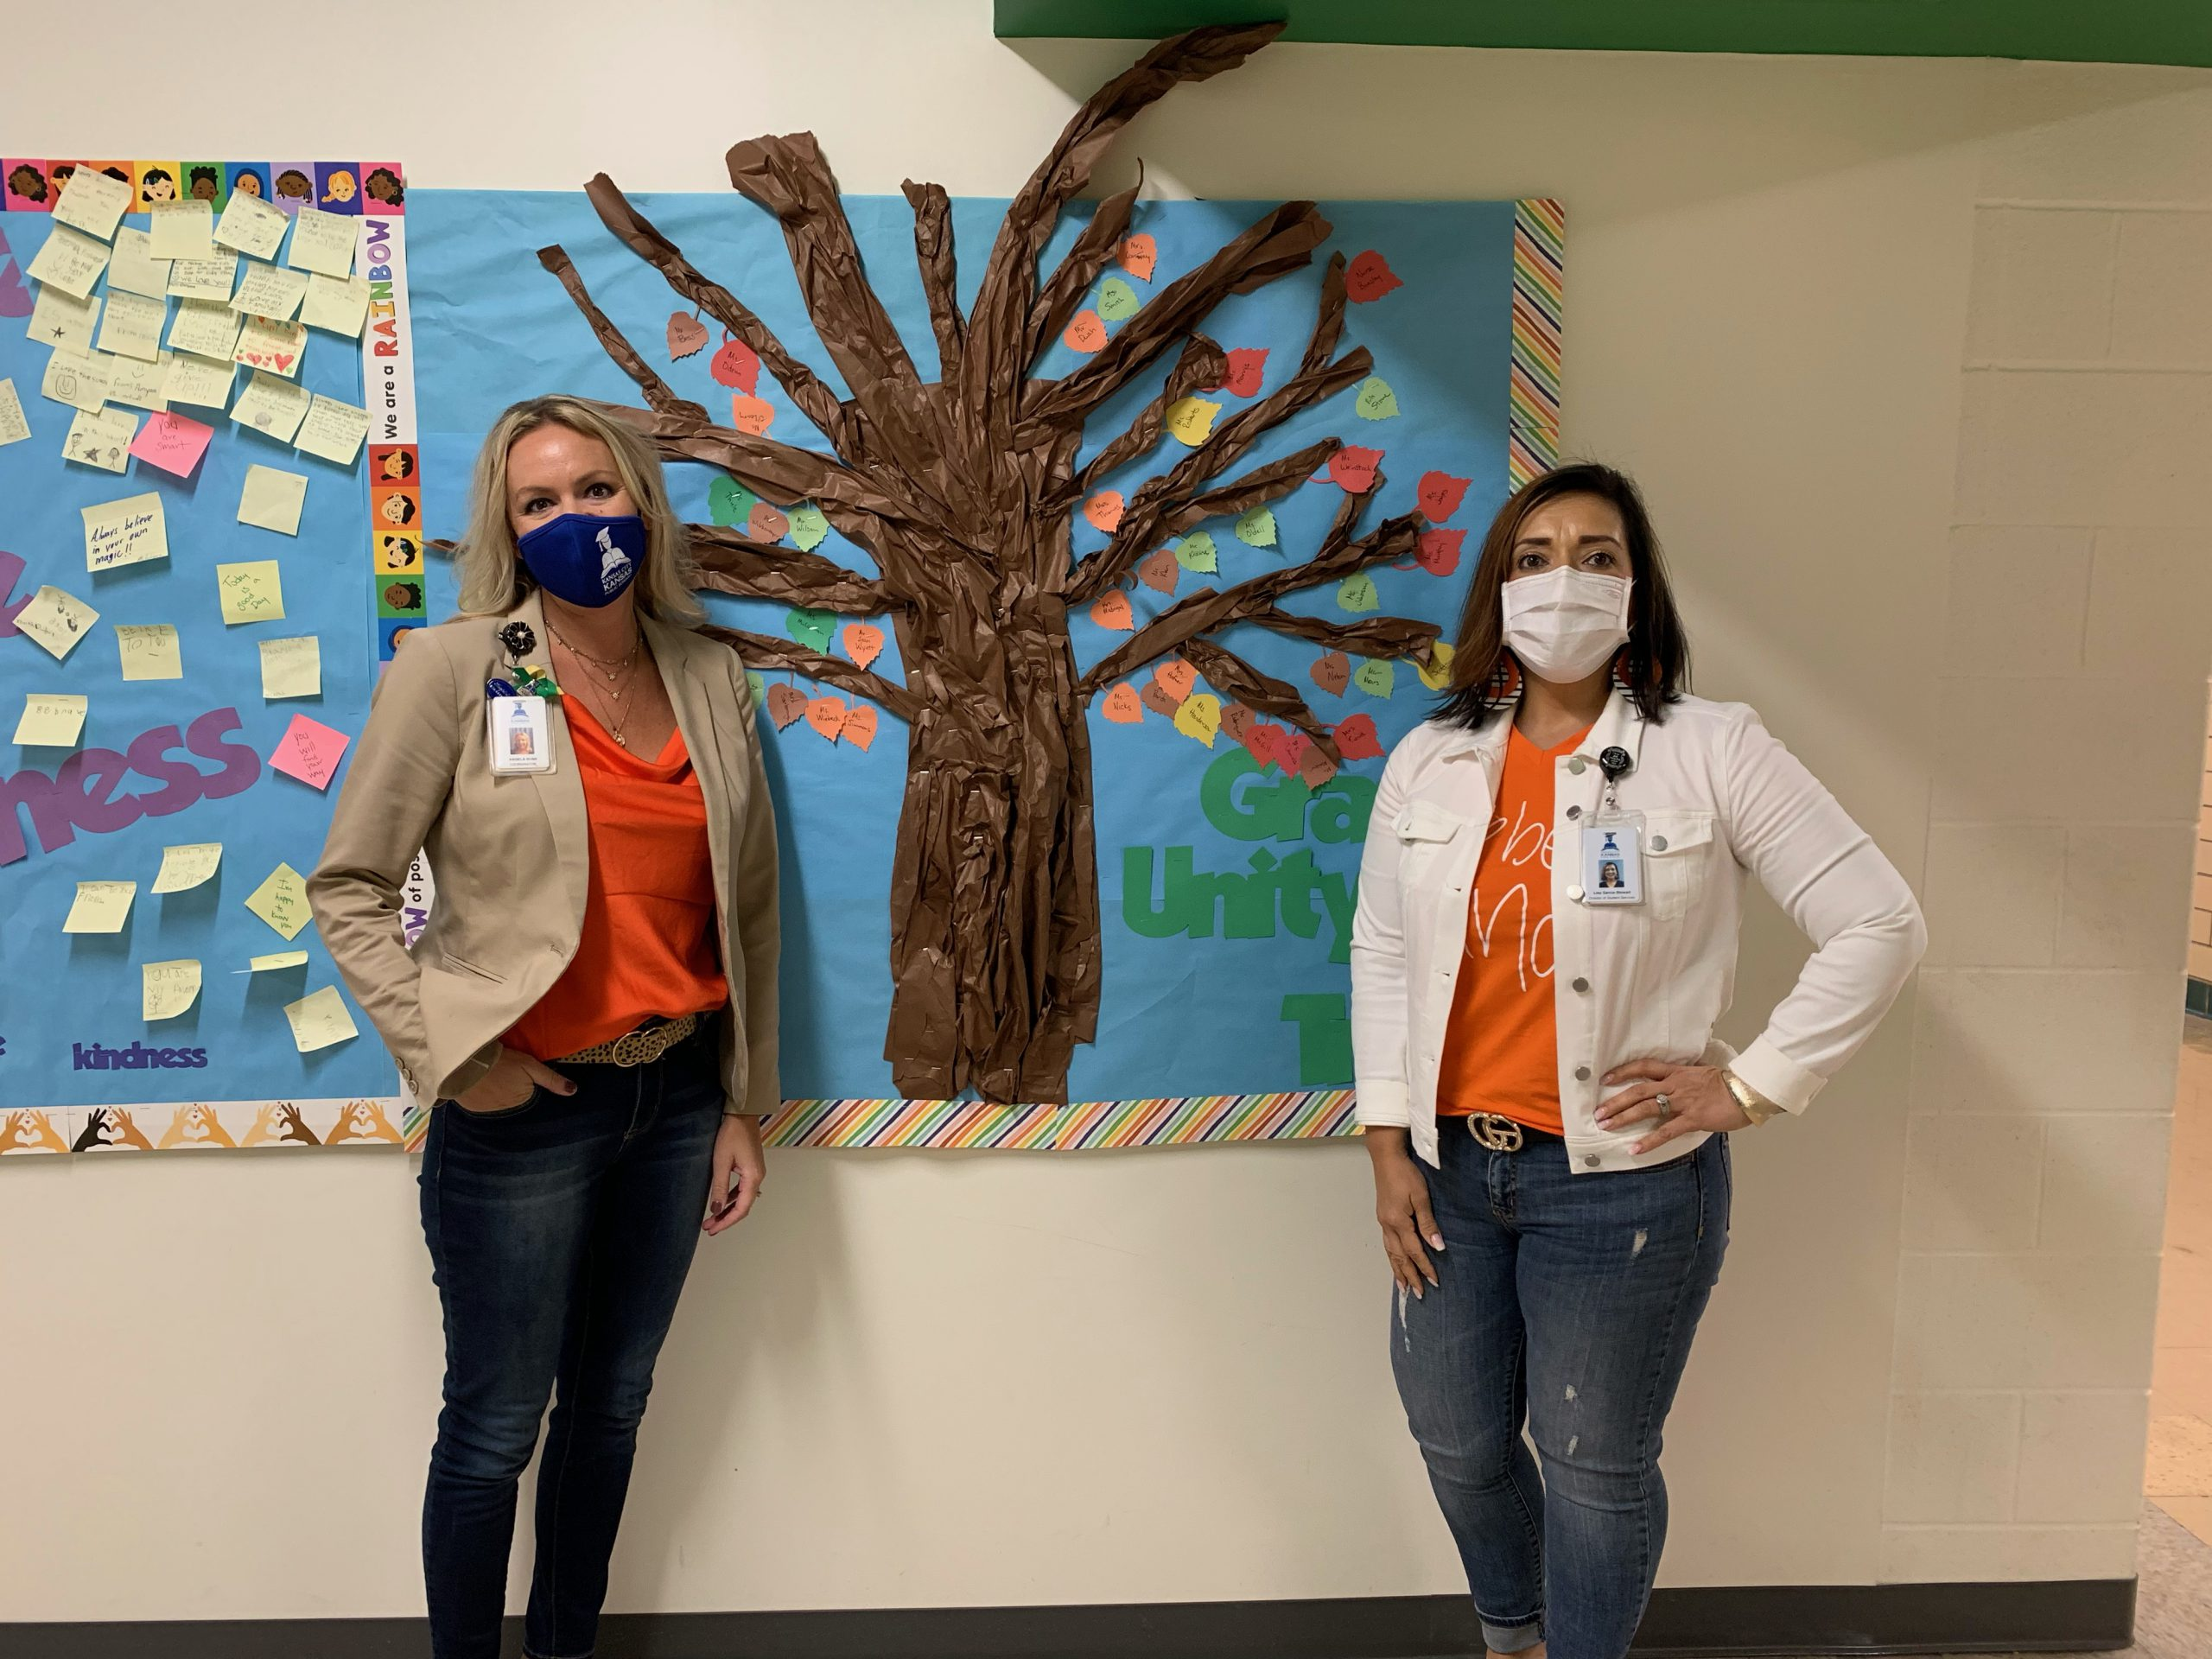 Students on Unity Day